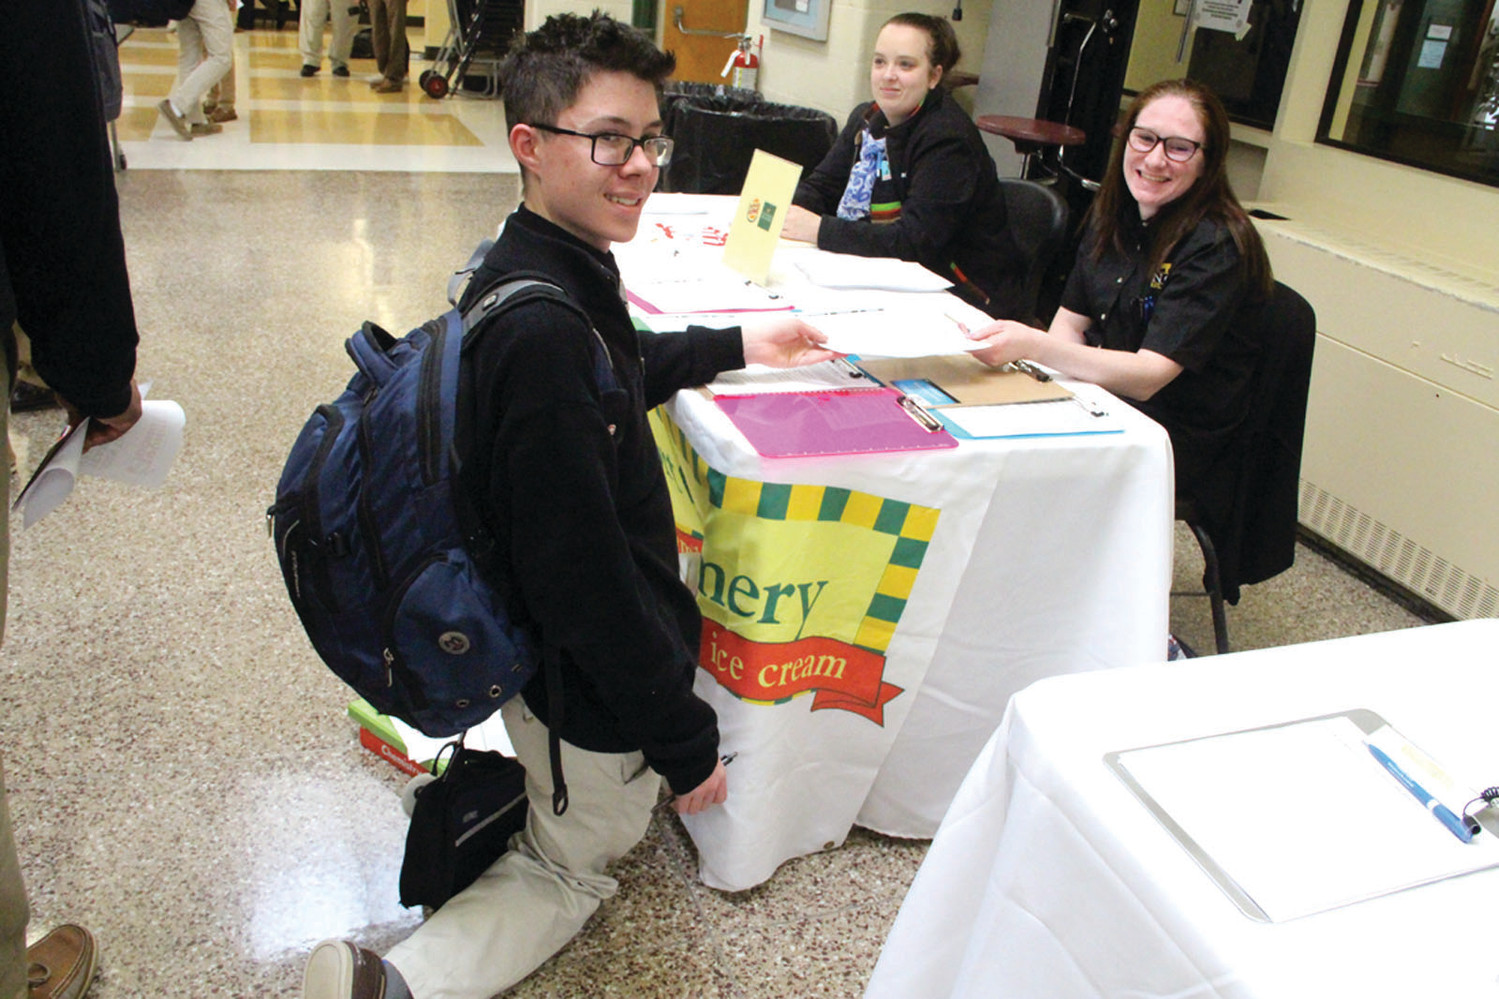 A PRAYER COULD HELP: Hendricken student Joseph D'Alfonso was on his knees Tuesday as he filled out a job application with Elizabeth Brennan of the Warwick Avenue Newport Creamery.